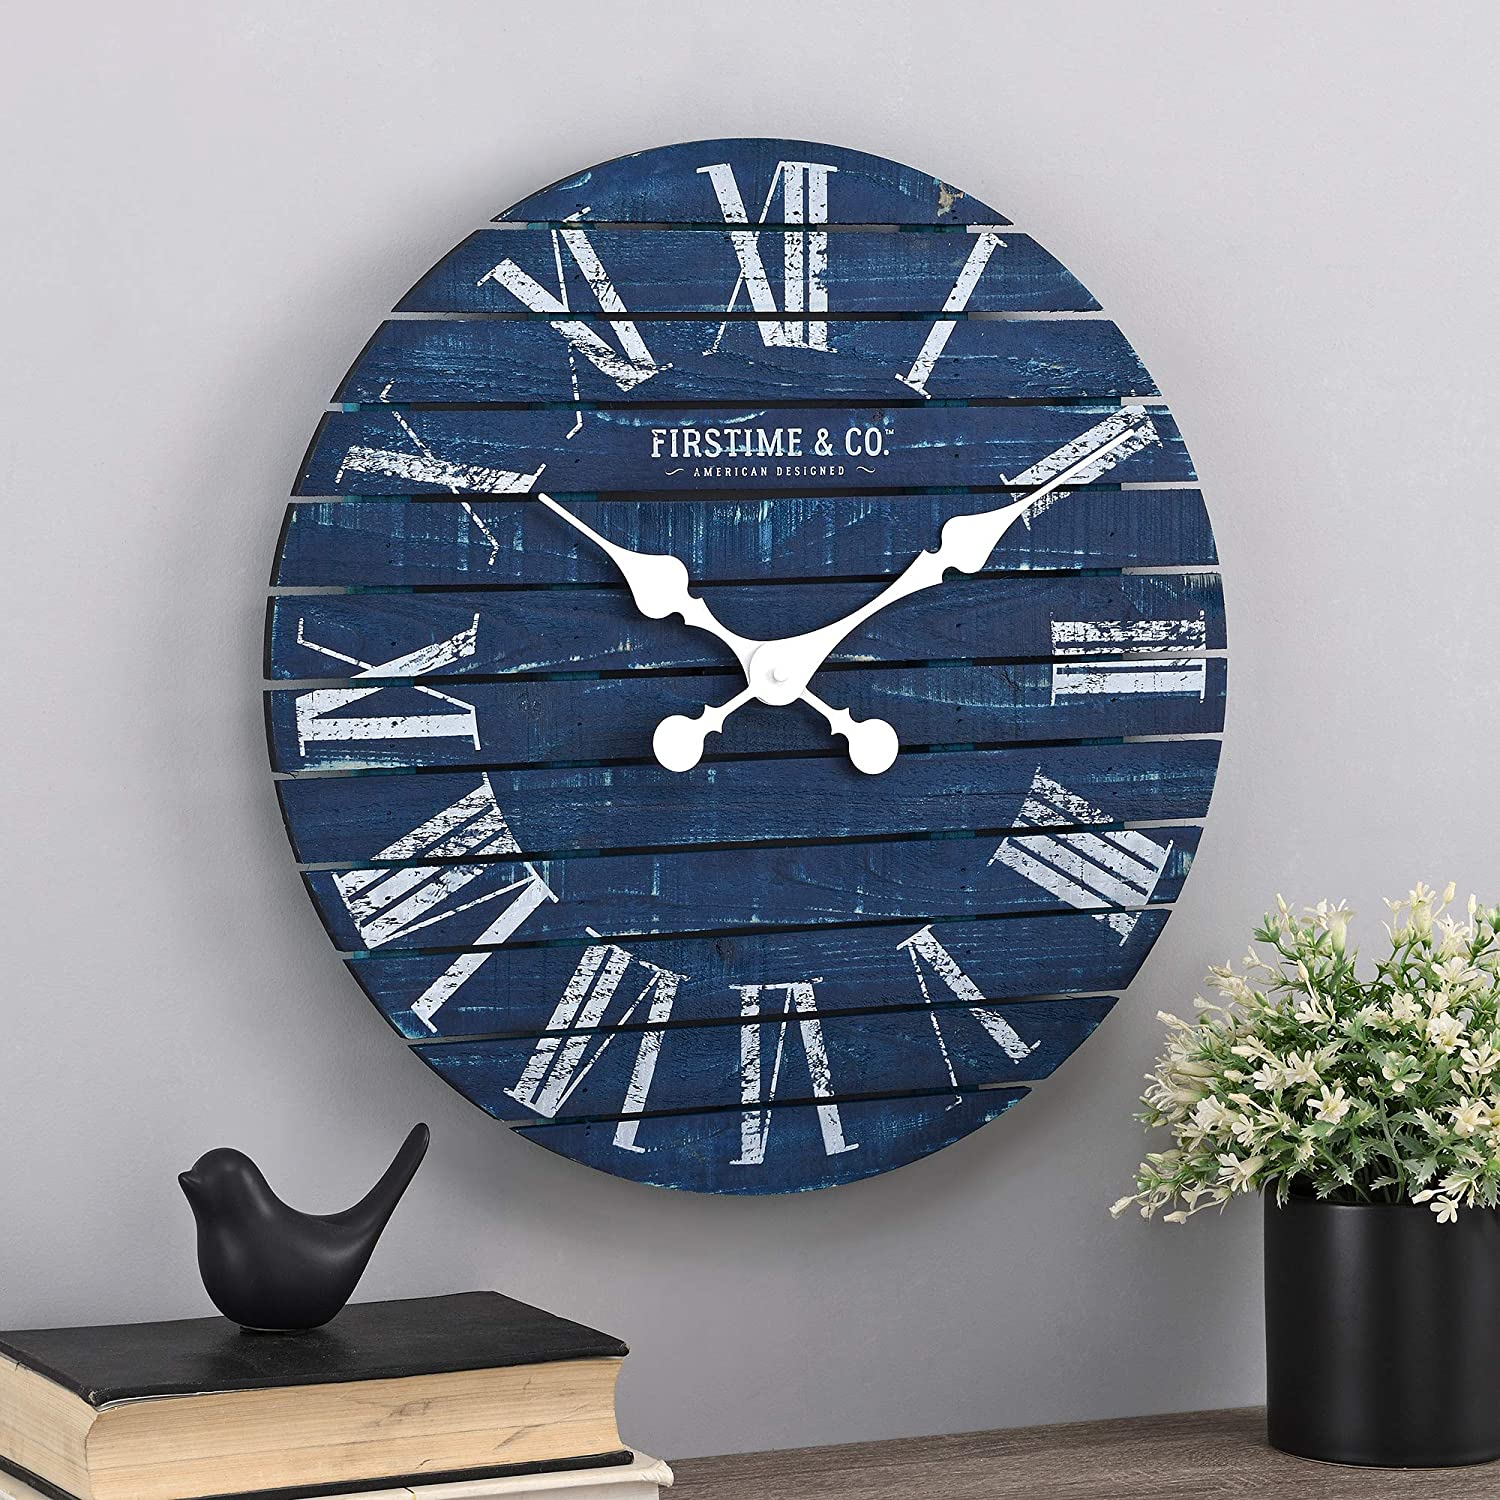 FirsTime & Co. Navy Augustus Farmhouse Shiplap Clock, American Designed, Navy, 18 x 2 x 18 inches